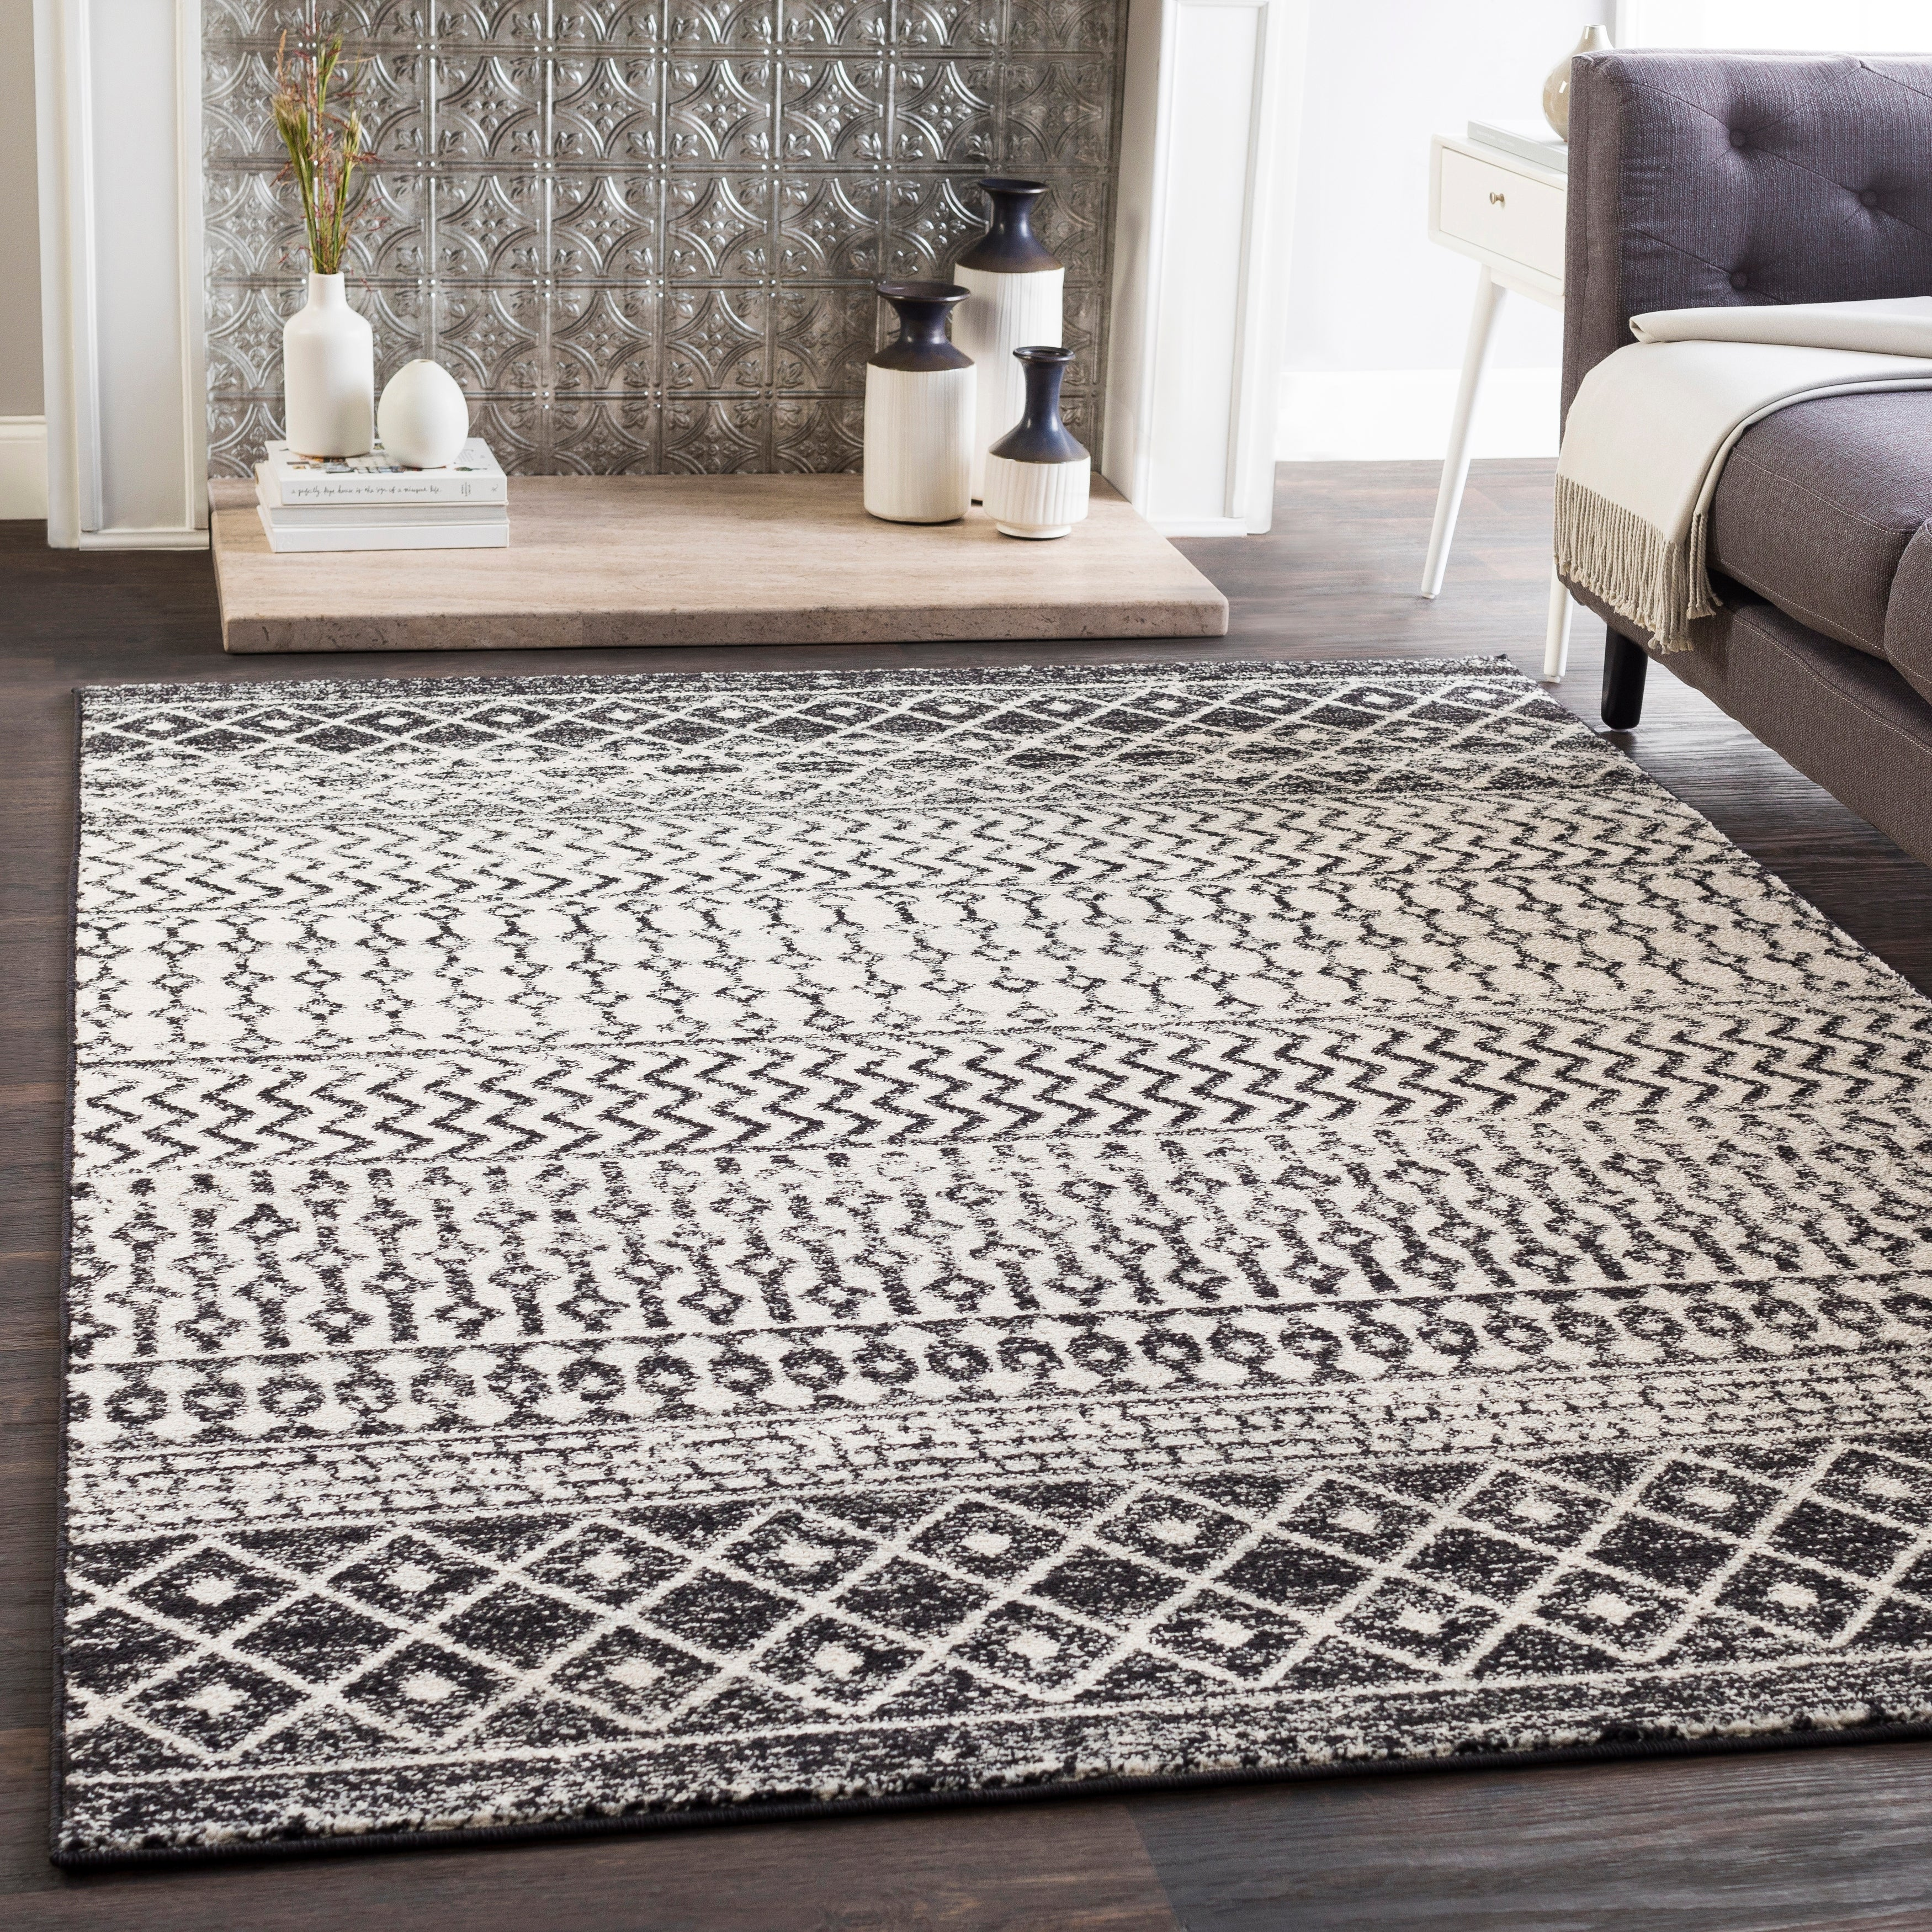 E Black And White Bohemian Area Rug